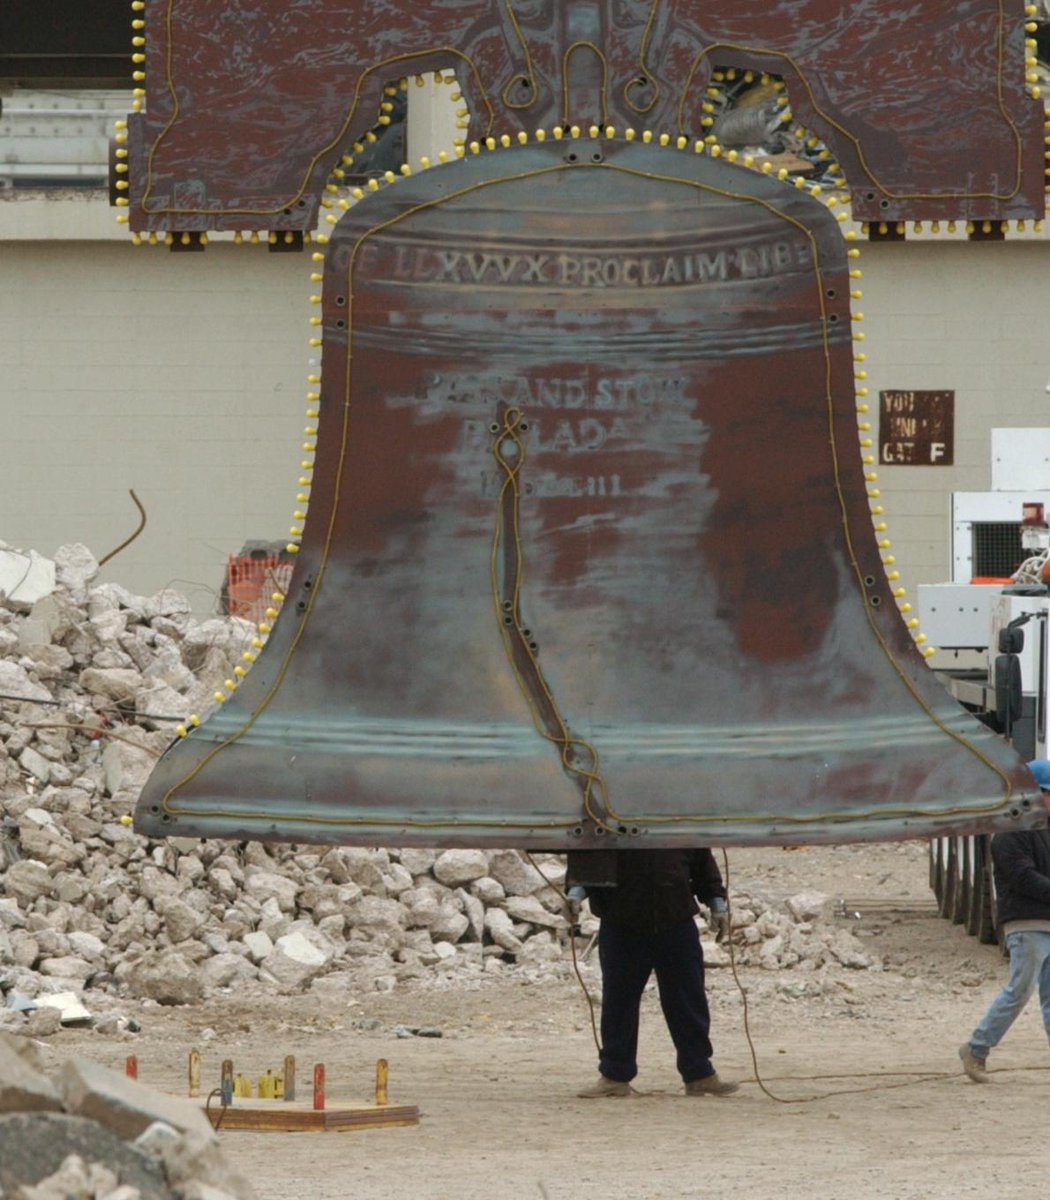 On this date 15 years ago, Veterans Stadium was imploded. #TBT  Fittingly, the same bell from The Vet was installed at Citizens Bank Park earlier today. #RingTheBell <br>http://pic.twitter.com/N60BNOc64w